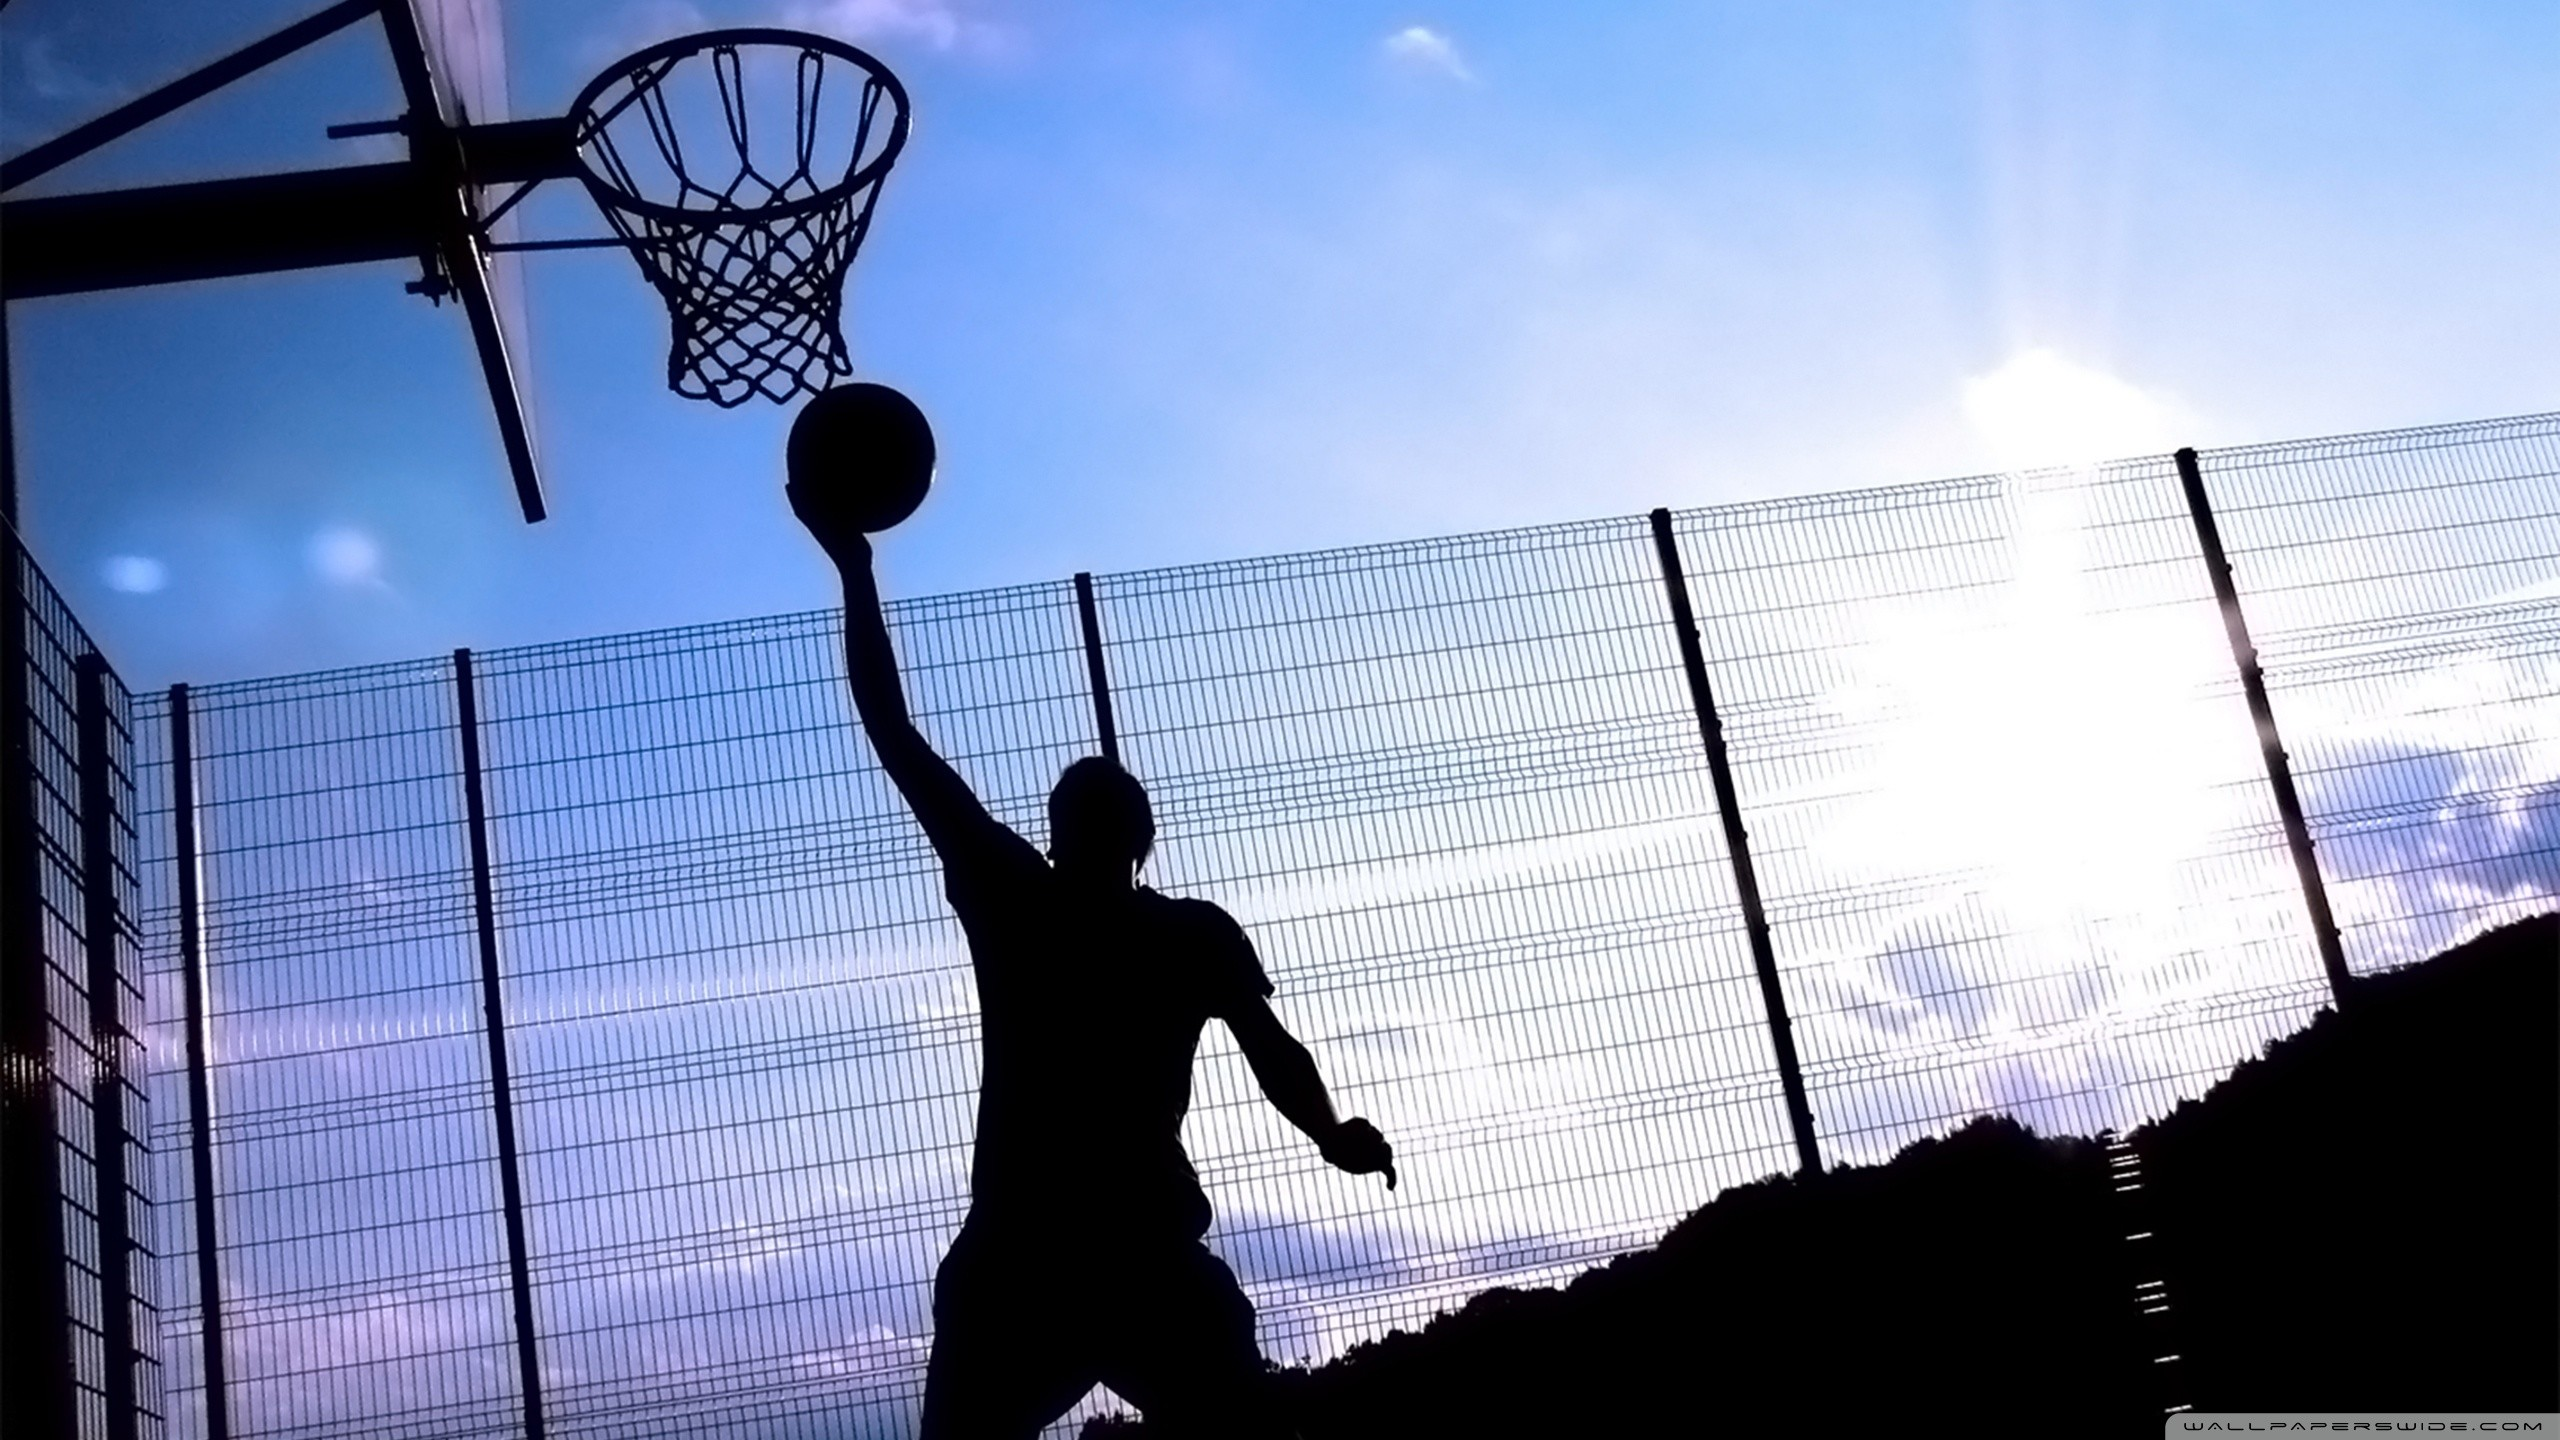 Basketball Wallpapers HD (64+ Images